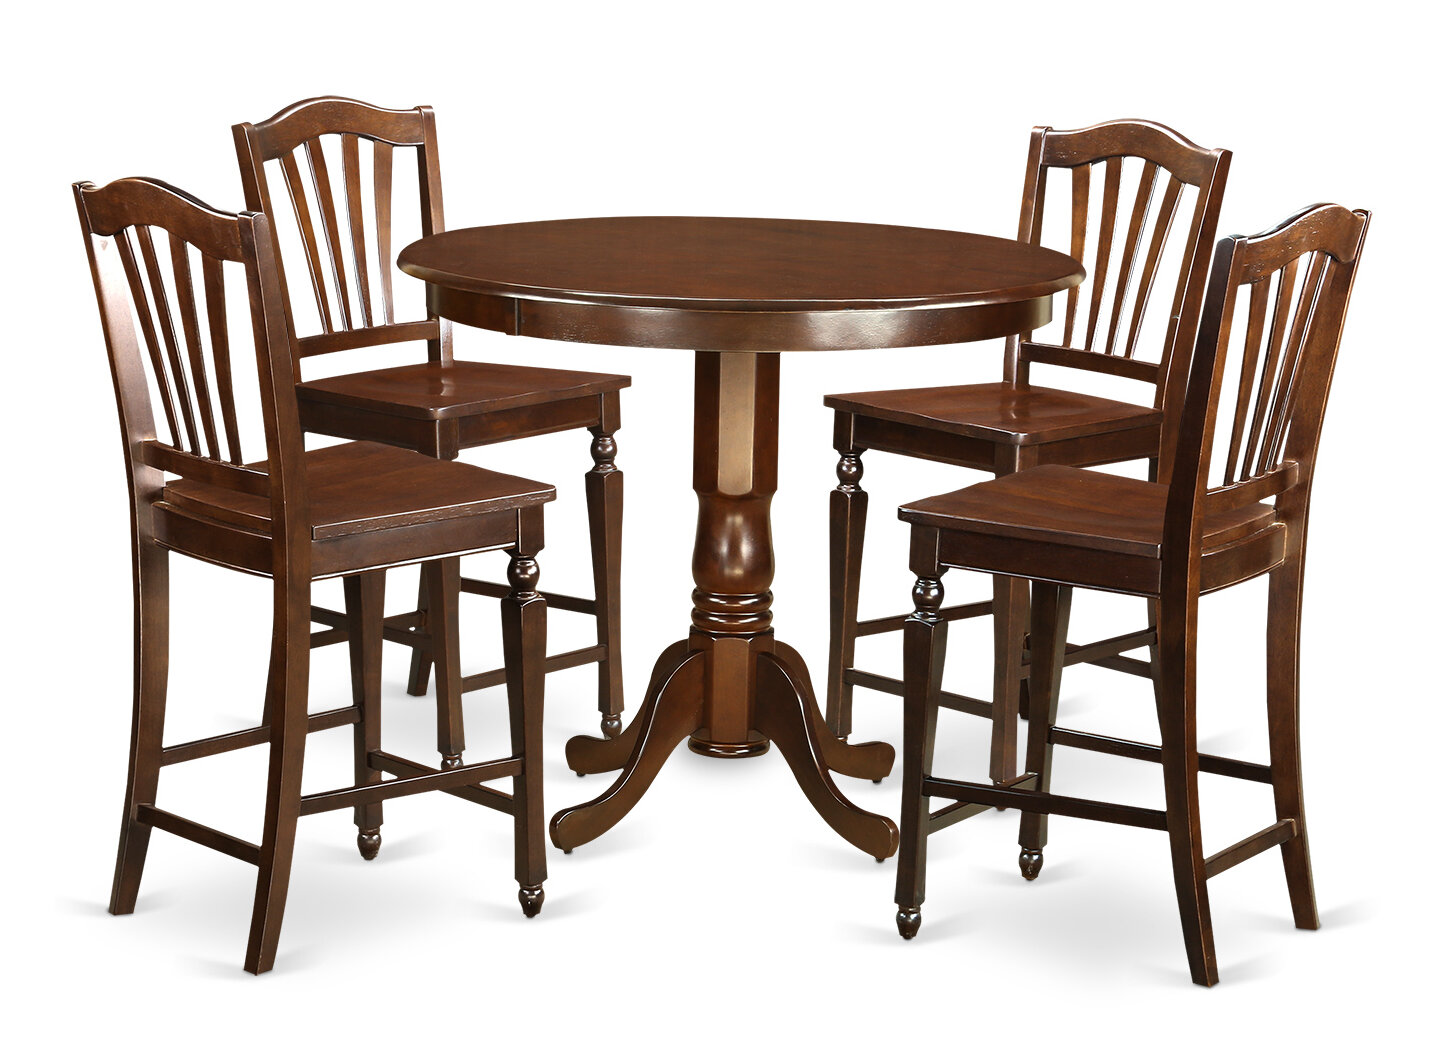 East west trenton 5 piece counter height pub table set for Cie publication 85 table 2